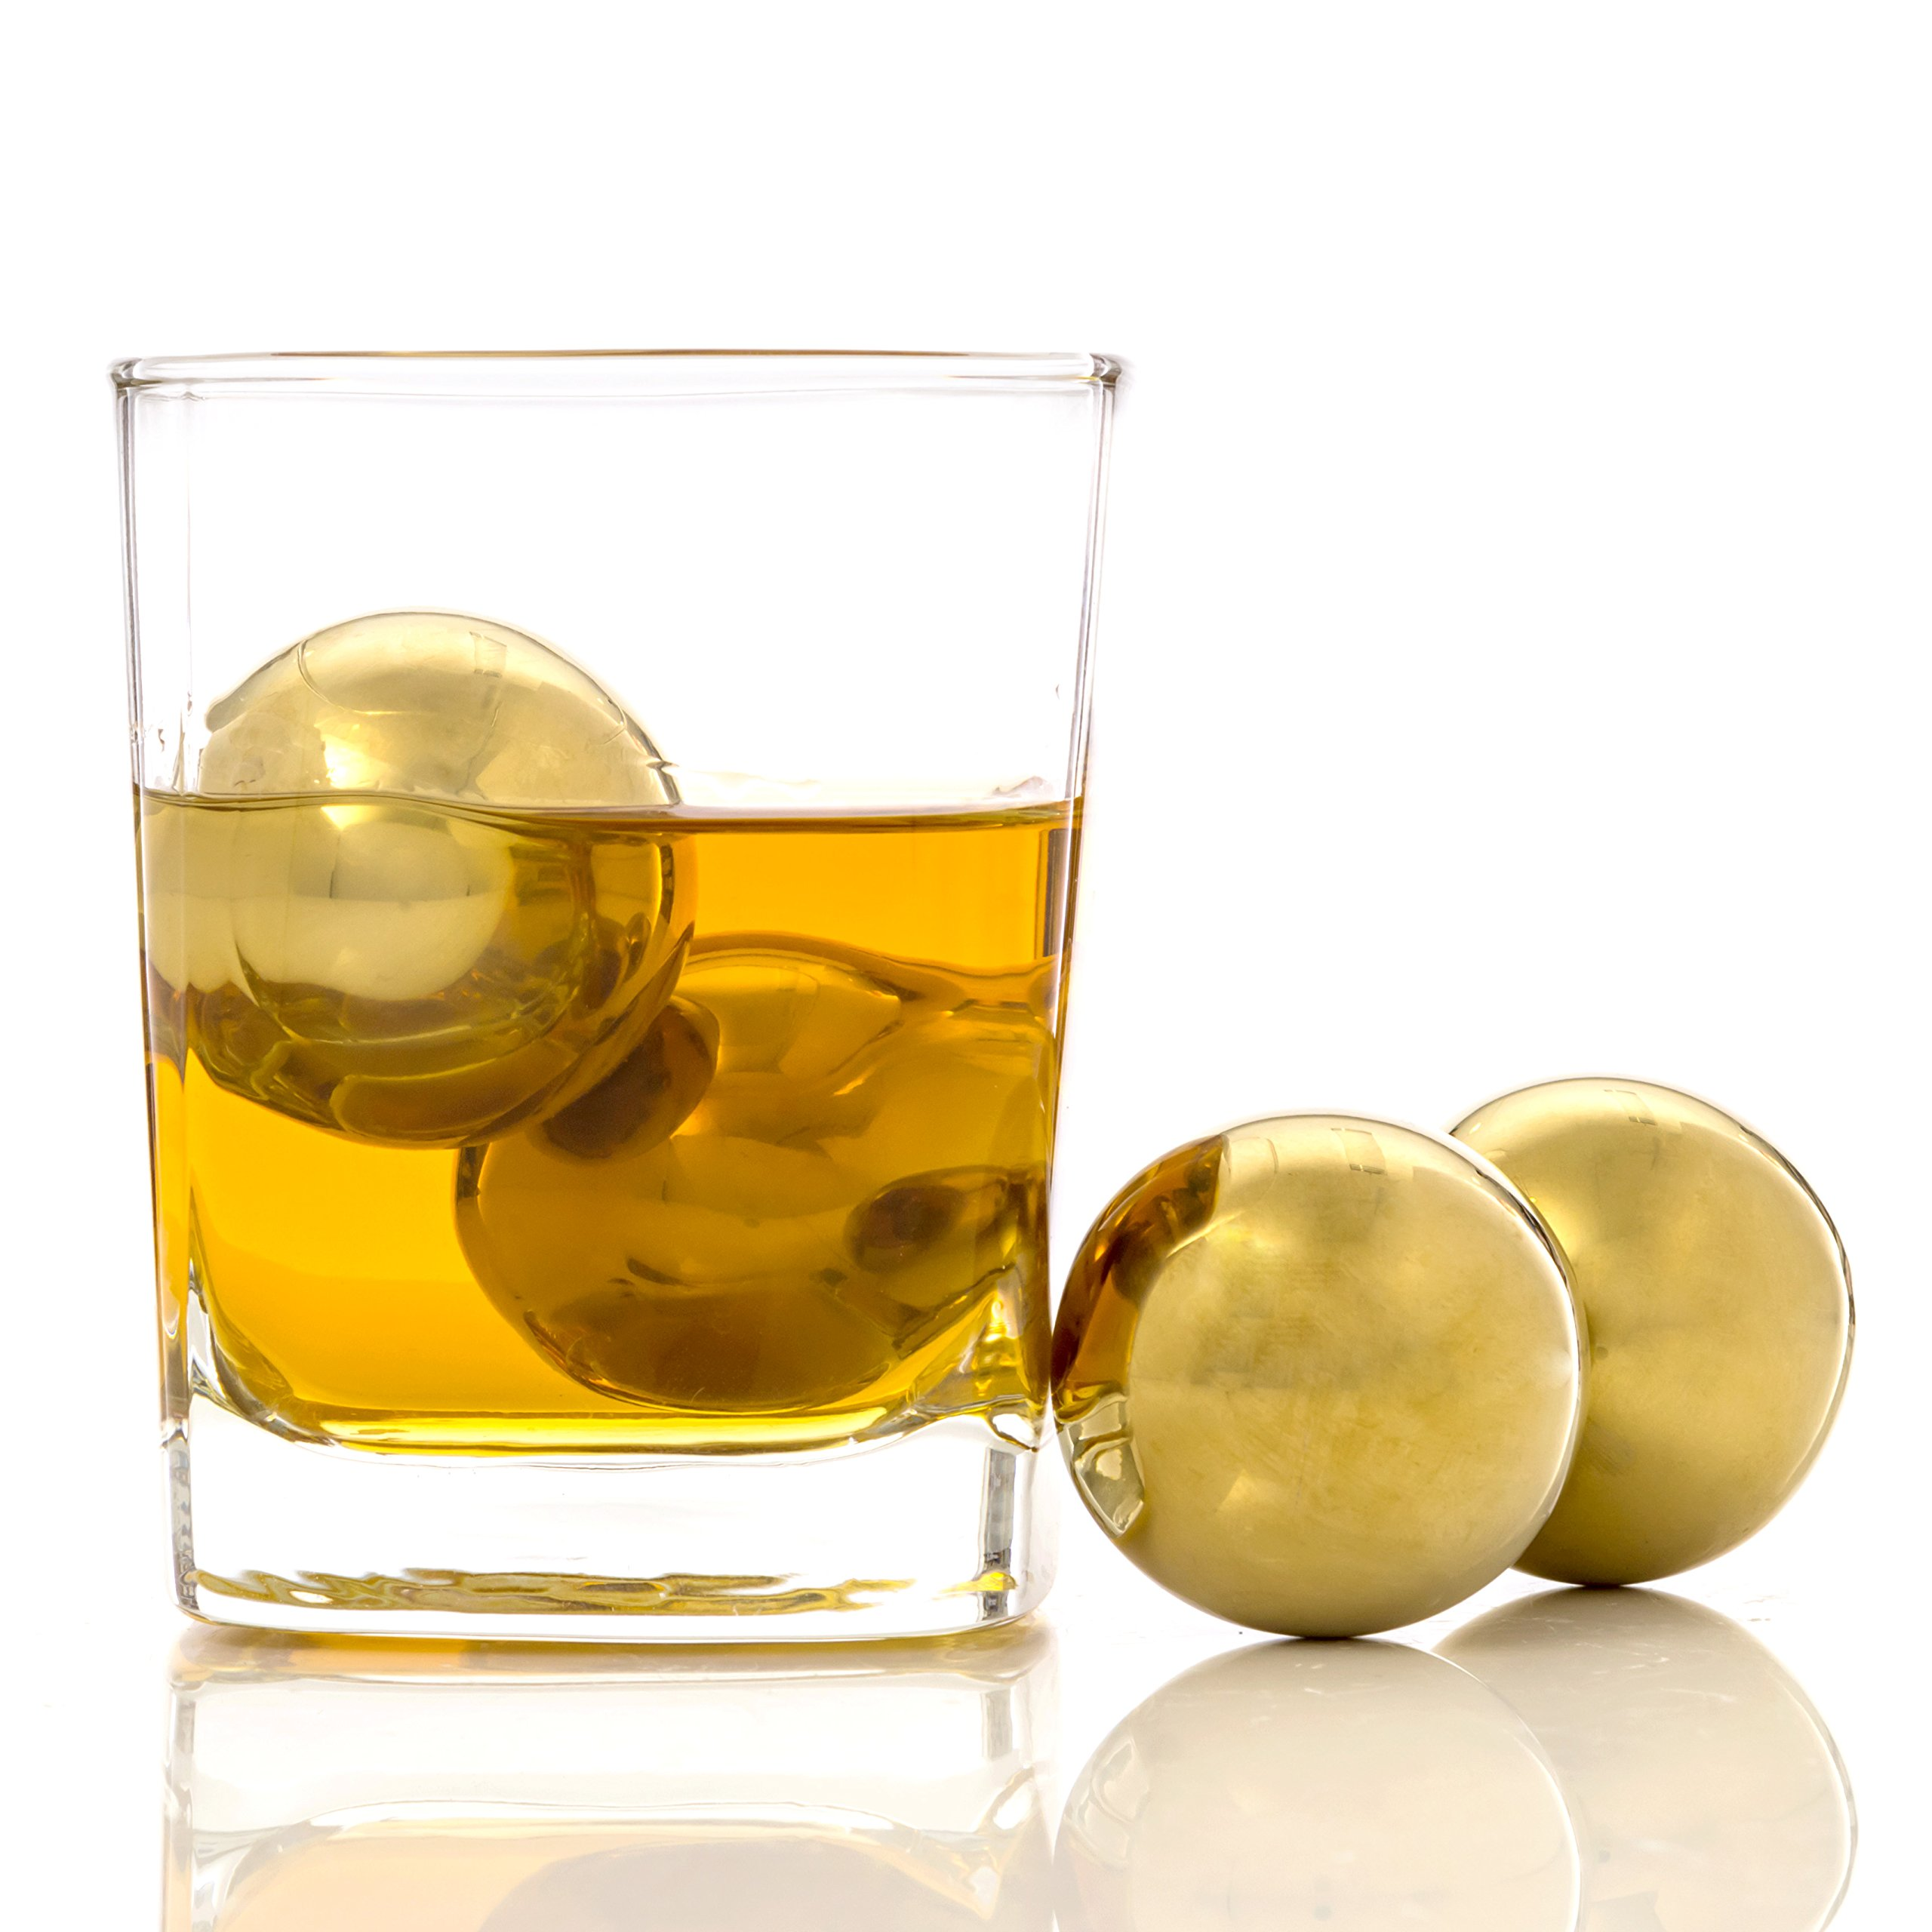 Chill-O Stainless Steel Gold Whiskey Big Ice Balls Set of 4 - BIG BALLS Series Whiskey Chillers - Wine Chillers - Beer Chillers - Vodka Chillers - Champagne Chillers - Spirits Chillers - Ball Chillers